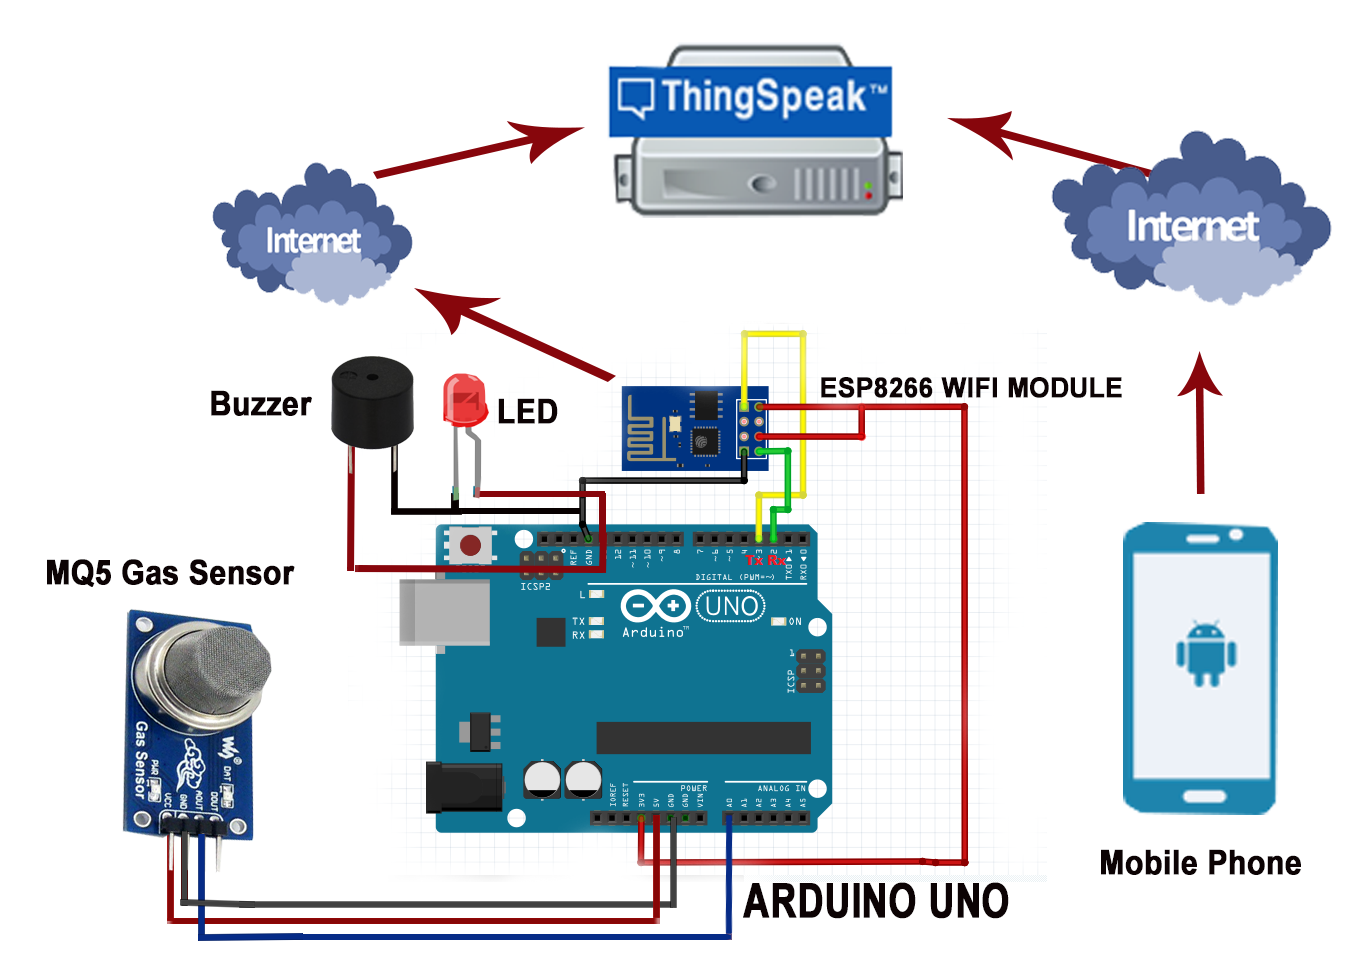 IOT Based LPG/CNG Gas Leakage Detection & Alert Using Arduino UNO